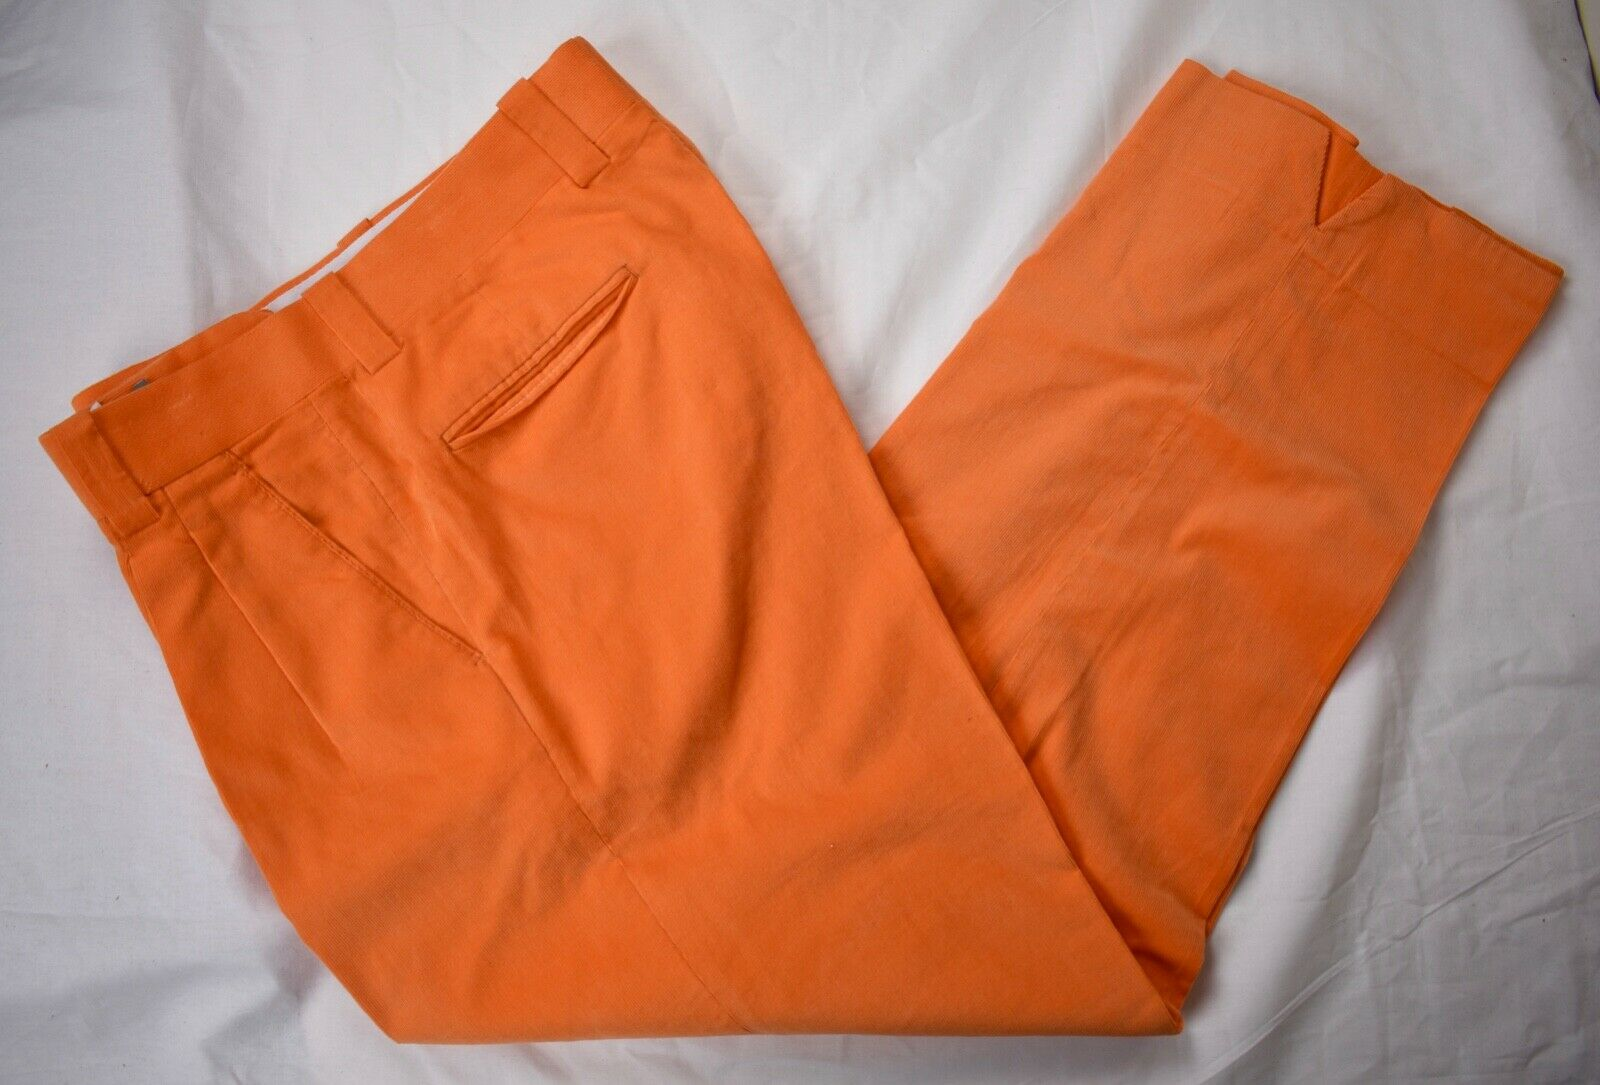 Unbranded Solid Neon orange Corduroy 100% Cotton Casual Trousers Size  34x30